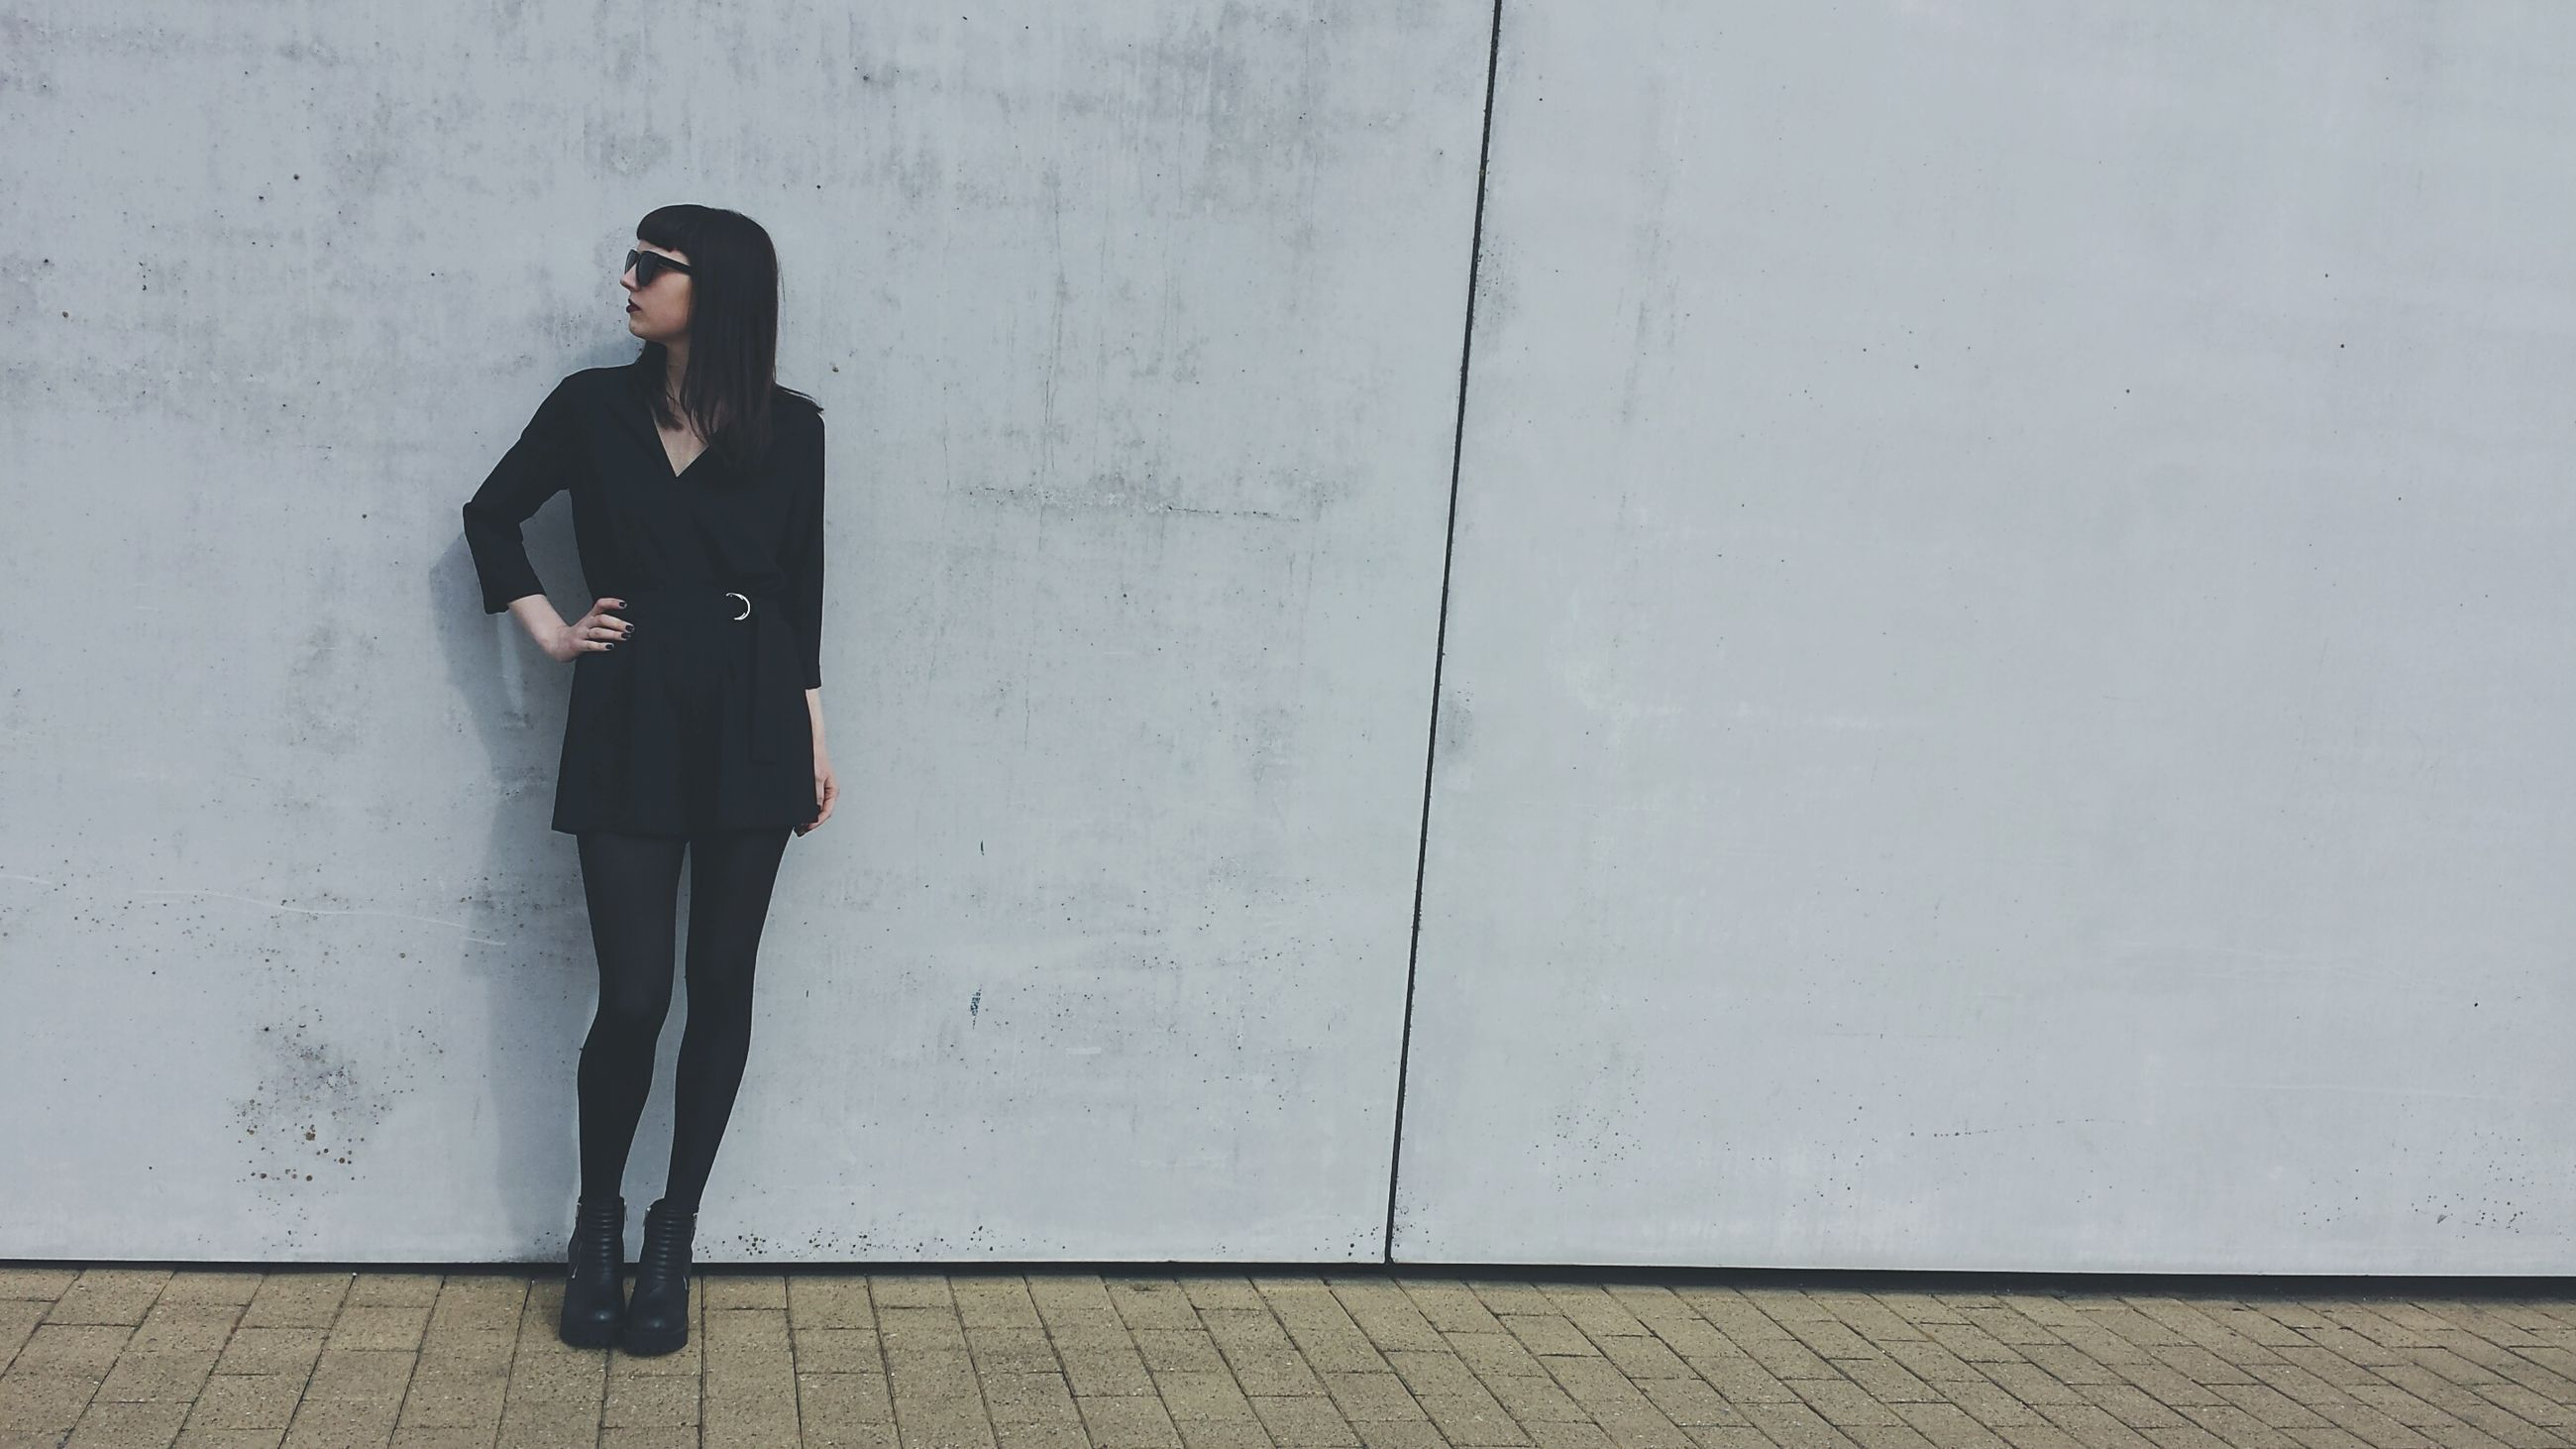 young adult, lifestyles, casual clothing, full length, standing, wall - building feature, person, leisure activity, architecture, front view, young women, wall, built structure, portrait, side view, looking at camera, building exterior